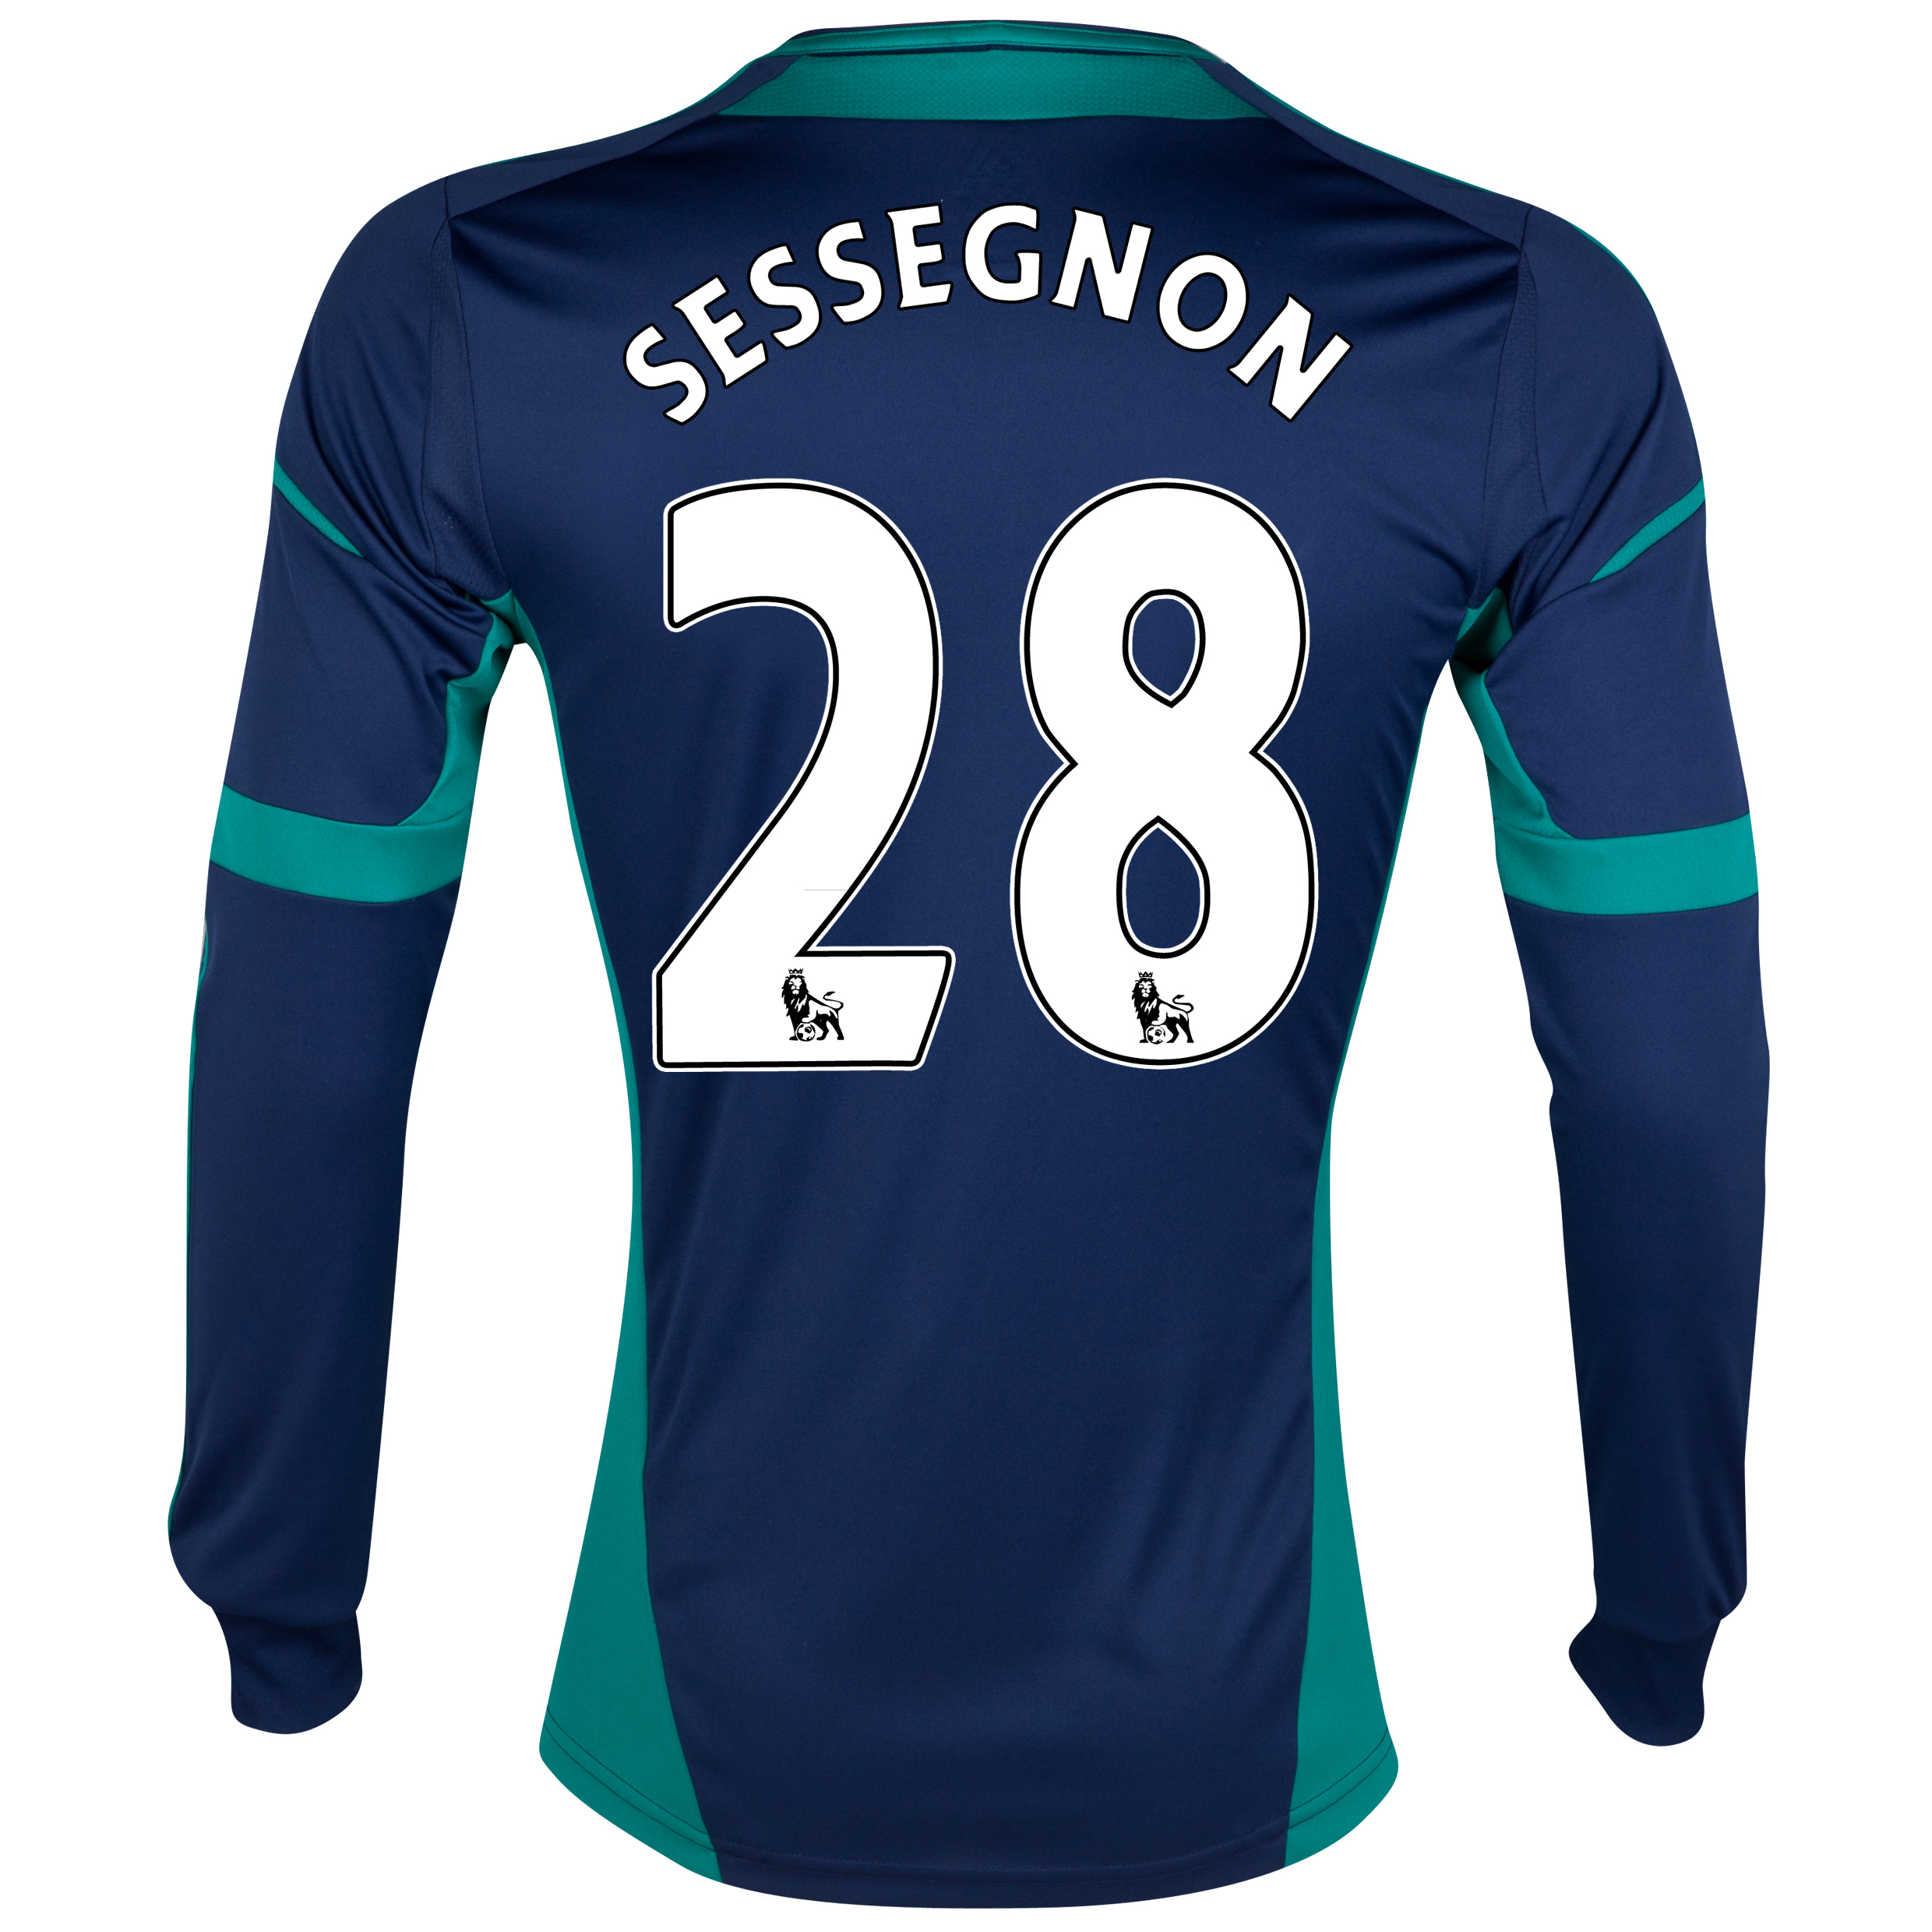 Sunderland Away Shirt 2012/13 - Long Sleeved - Junior with Sessegnon 28 printing